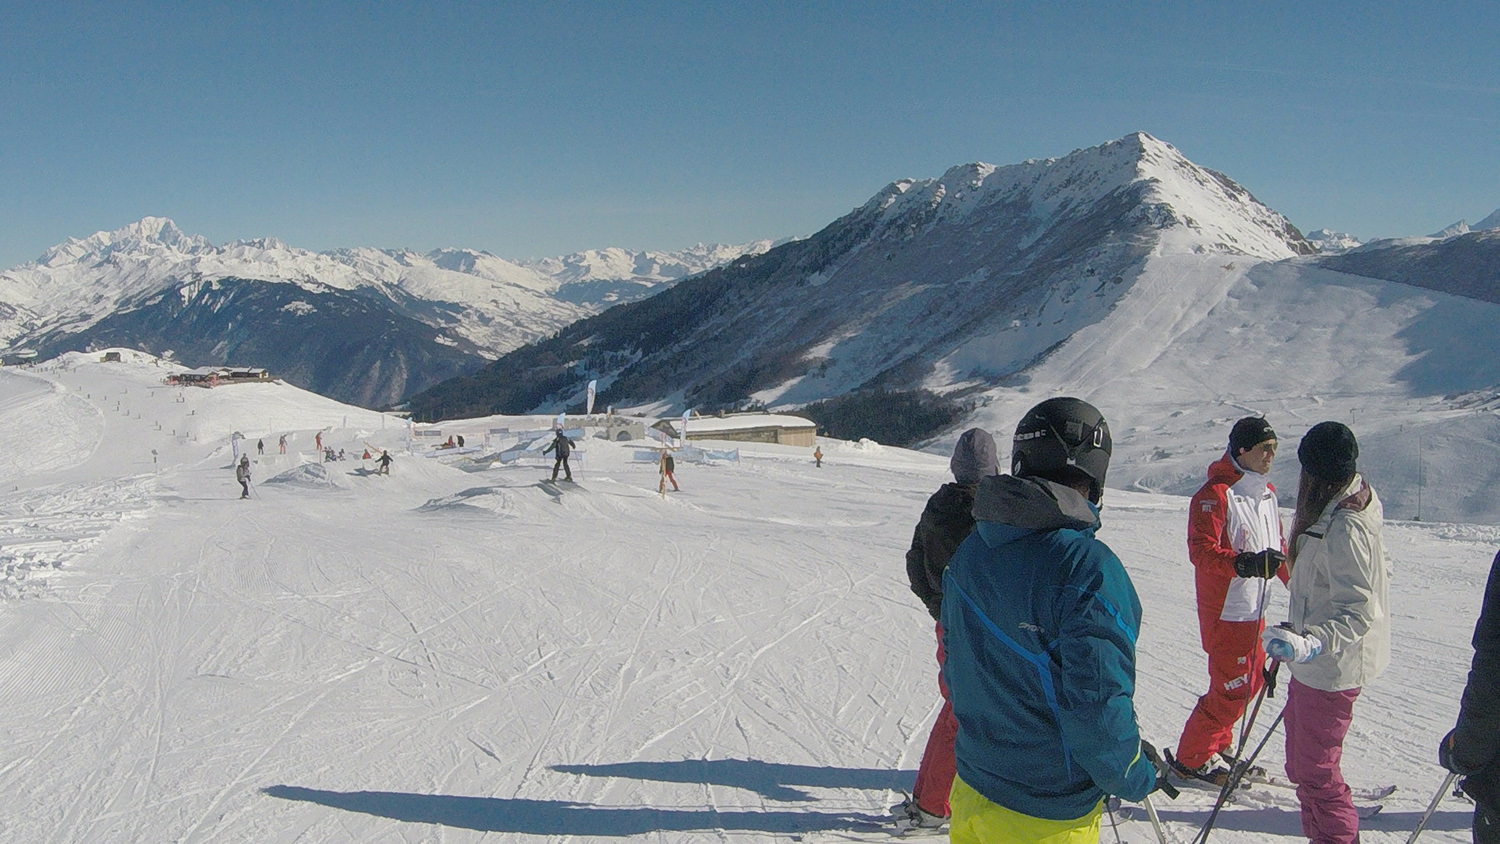 snowboarding in Valmorel, France